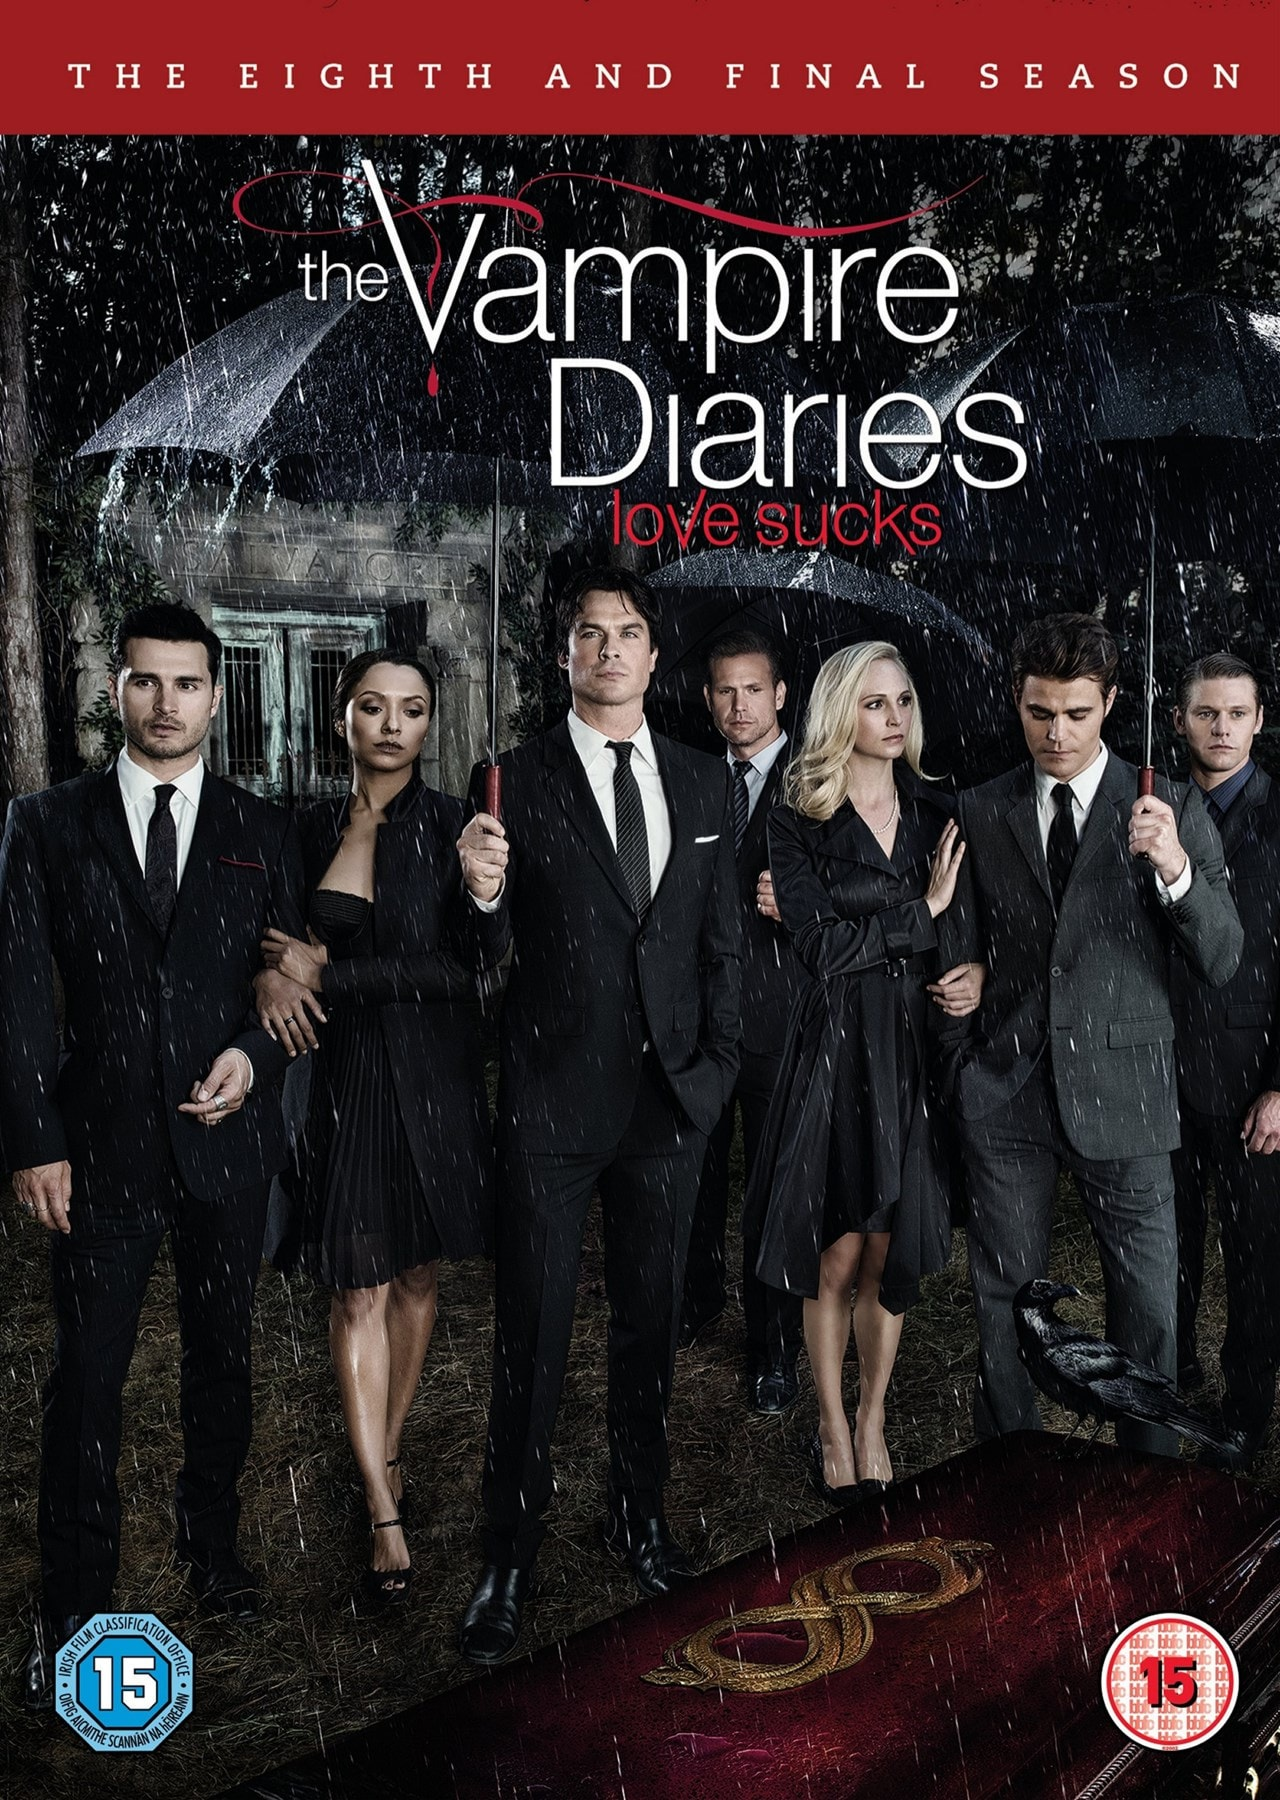 The Vampire Diaries: The Eighth and Final Season - 1